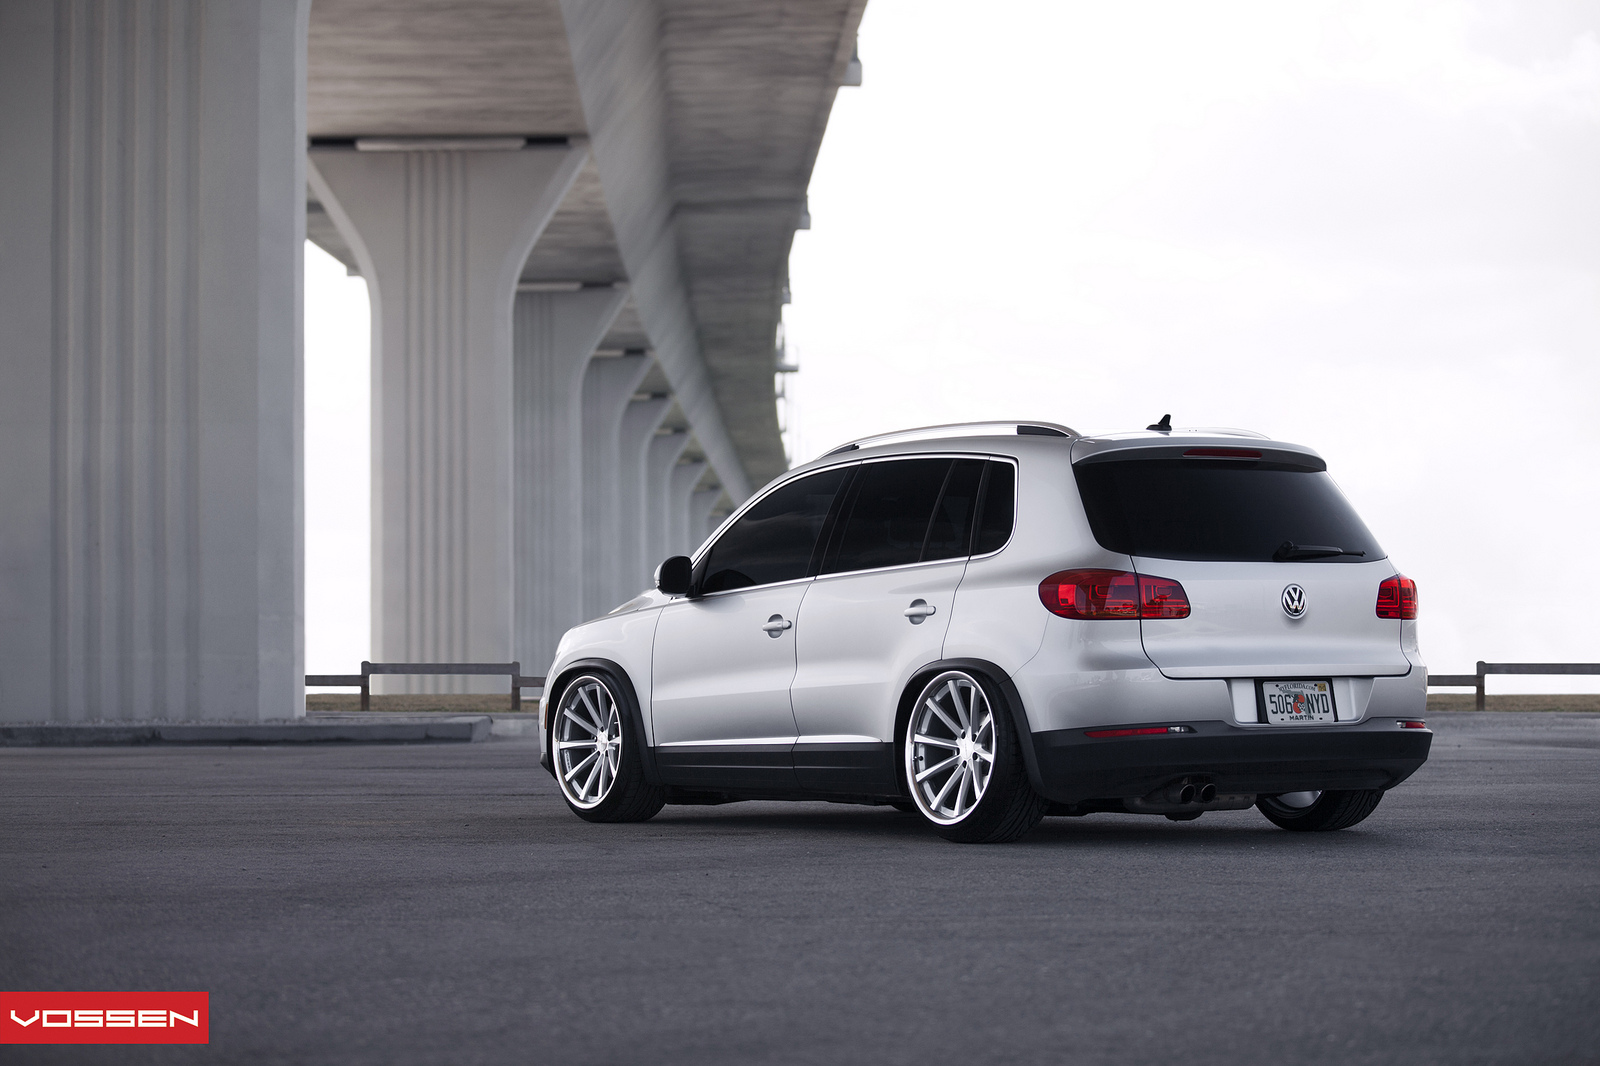 Used Car Rims >> VW Tiguan Bagger on 20-Inch Vossen Wheels - autoevolution